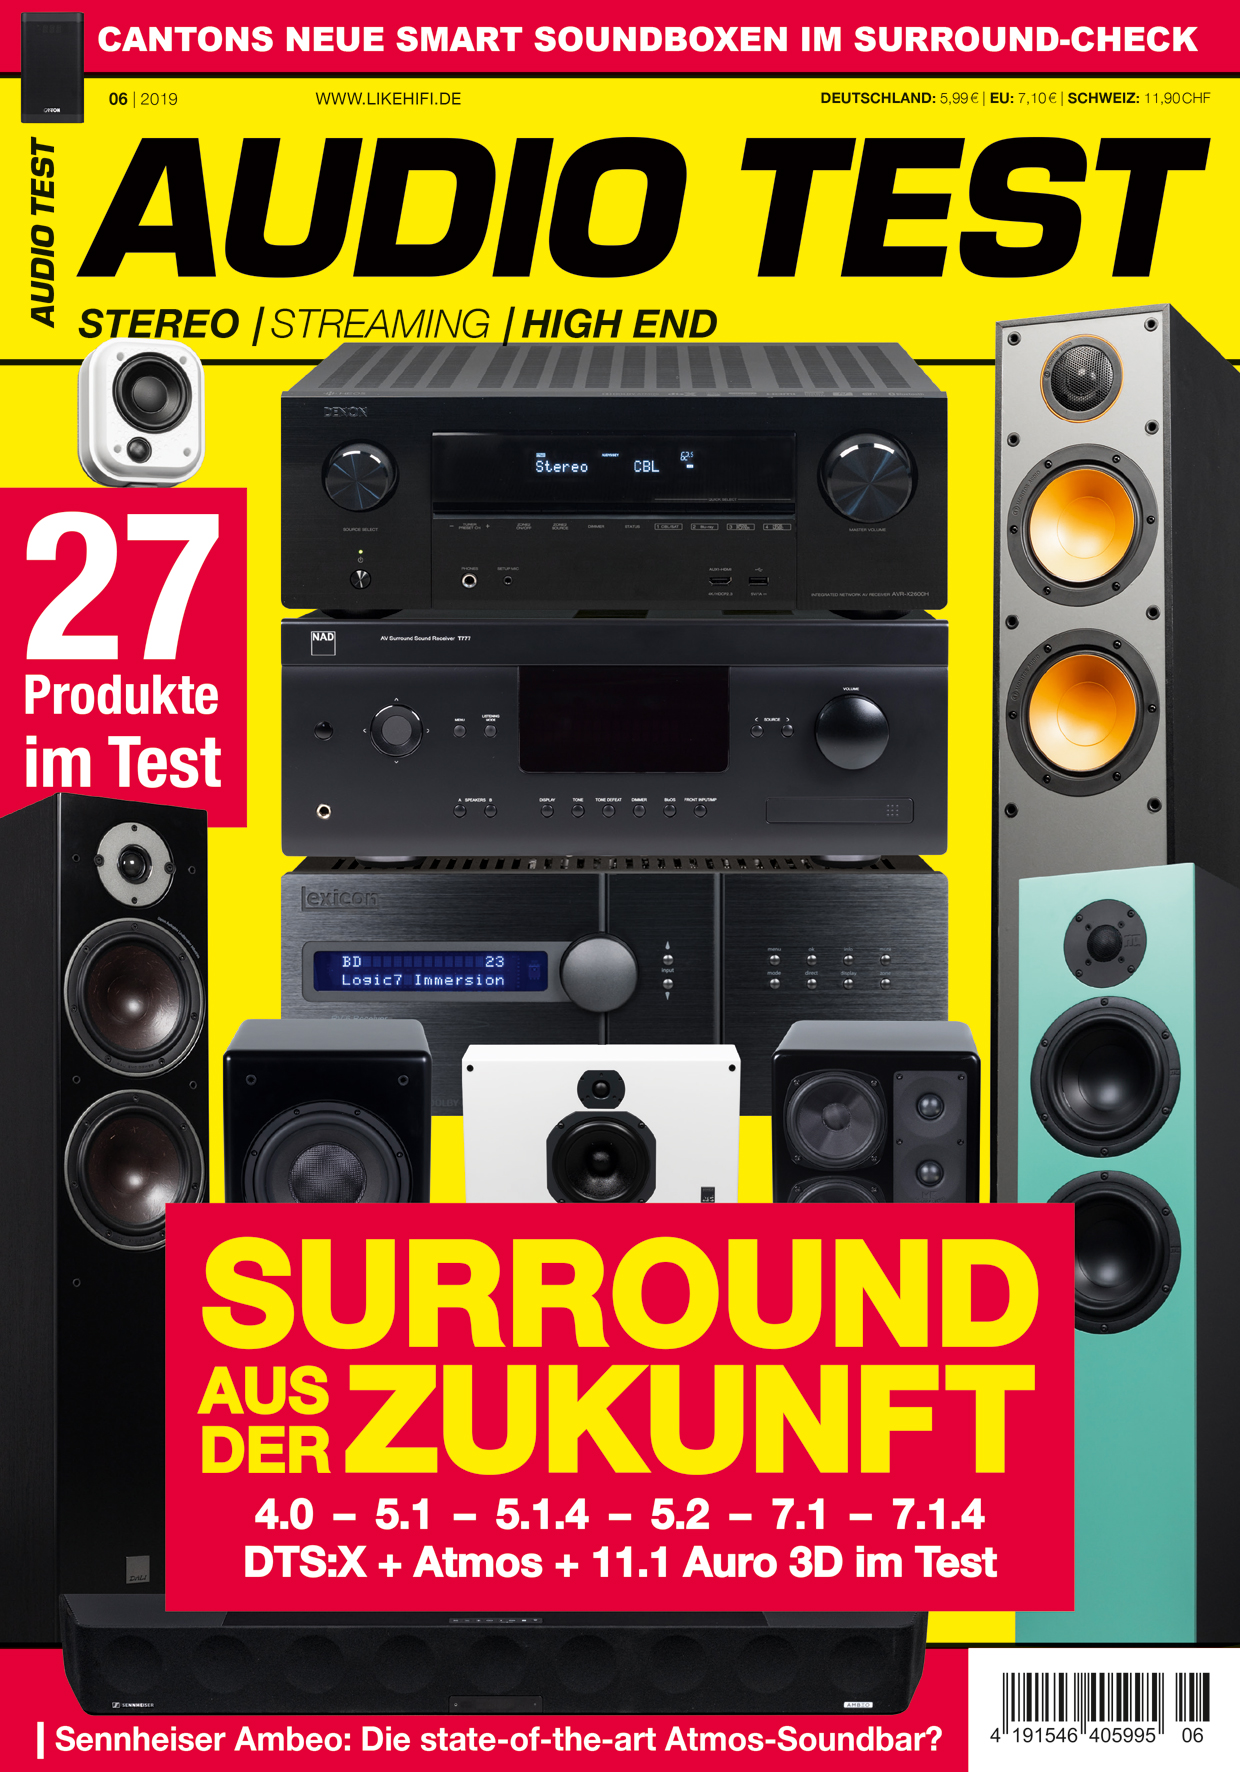 AUDIO TEST Ausgabe 6/19 Titelbild Cover Magazin Hifi Heft Highend Test Review Testmagazin Heimkino Surround Mehrkanal